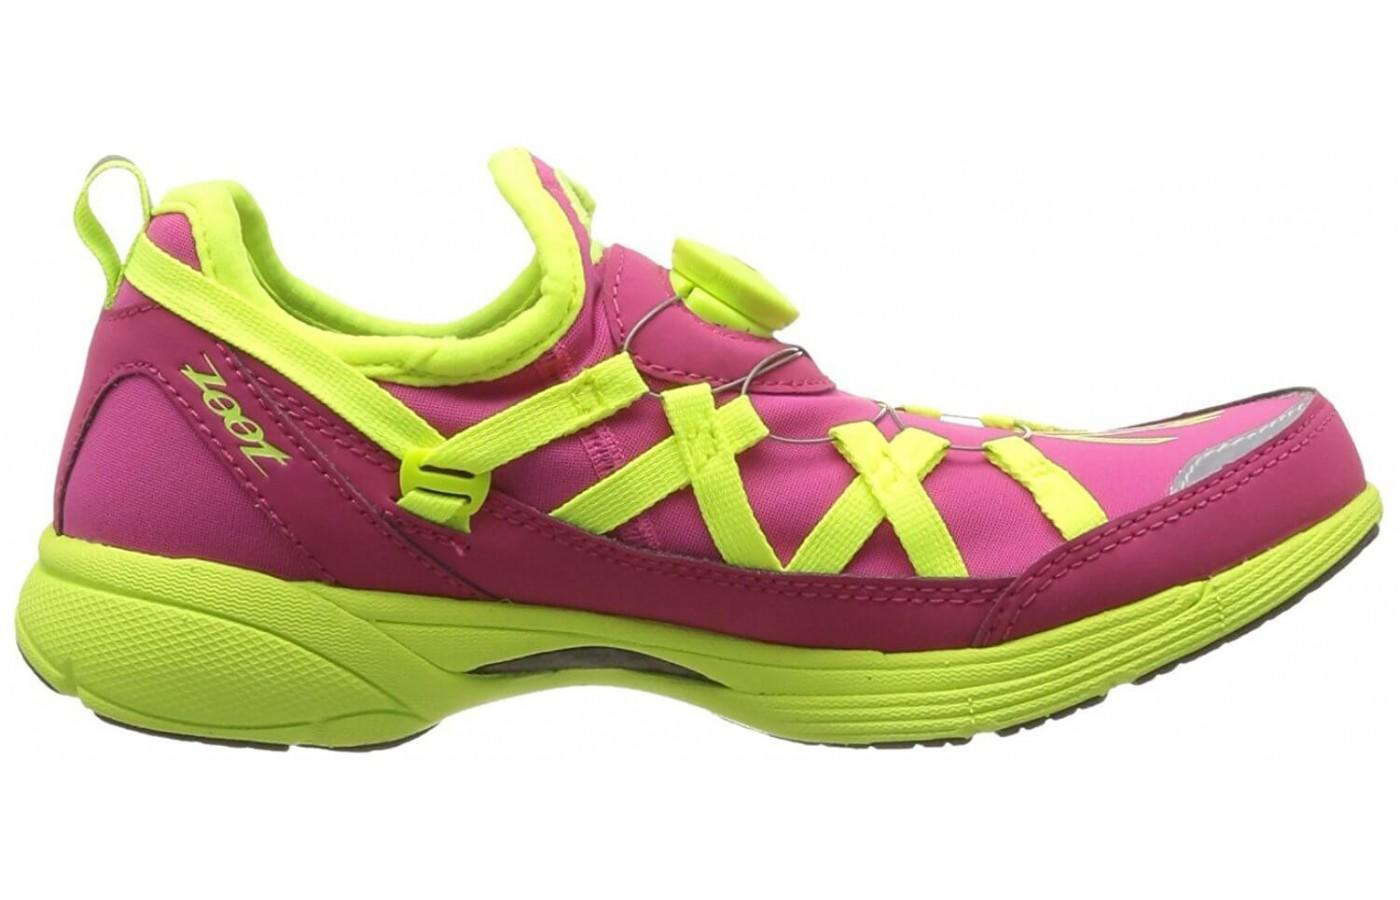 the Zoot Ultra Race 4.0 uses Z-Bound technology for a cushioned ride